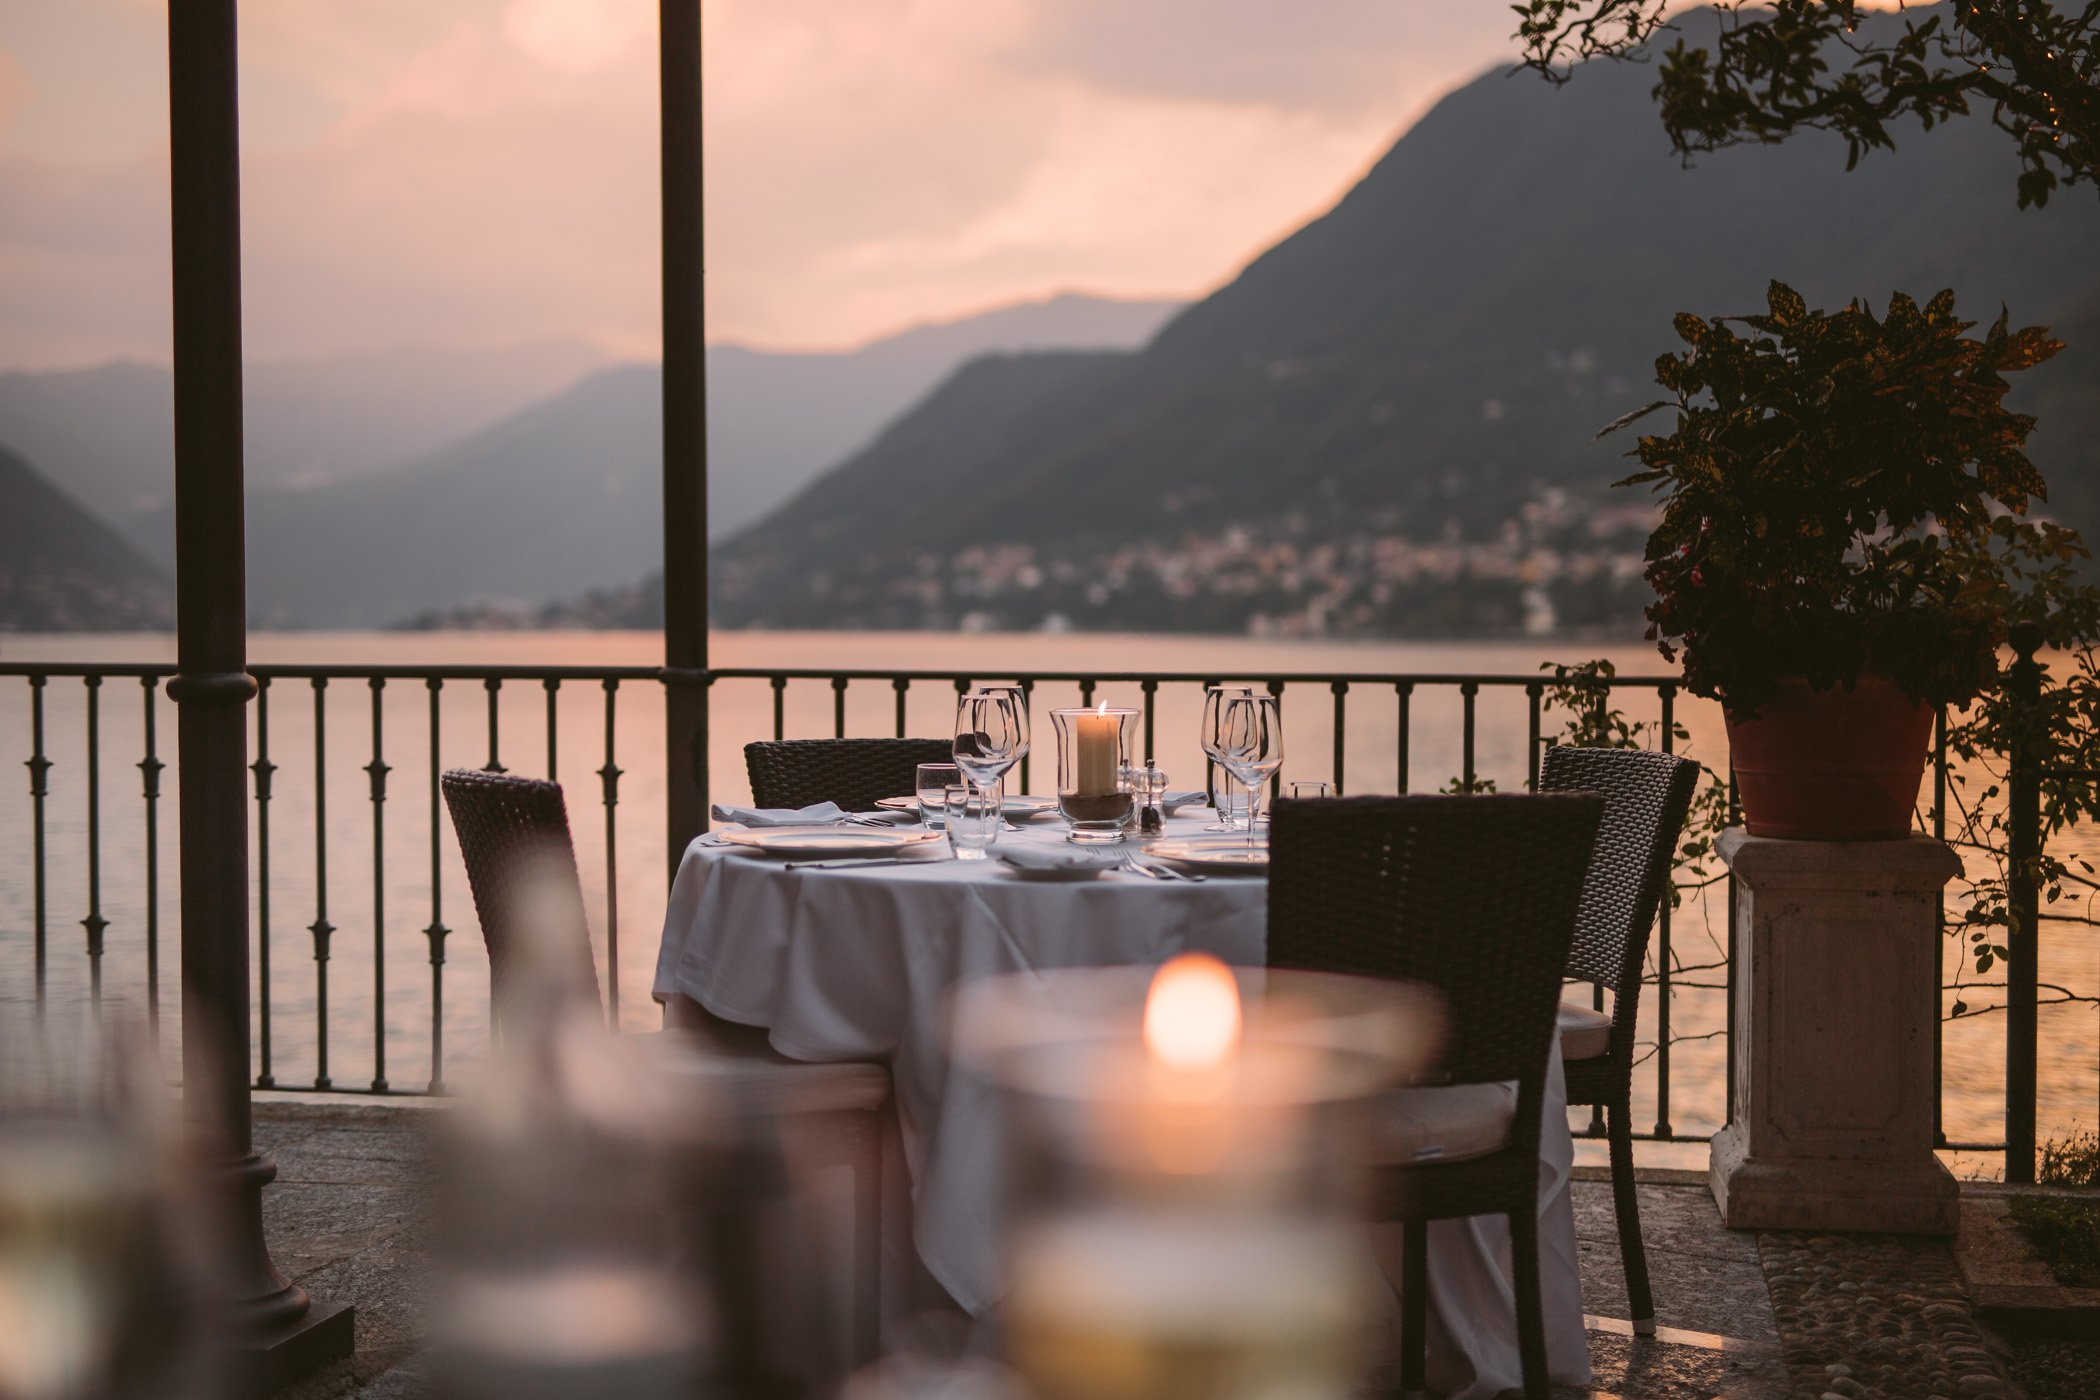 Hotel Villa Flori at Como Lake